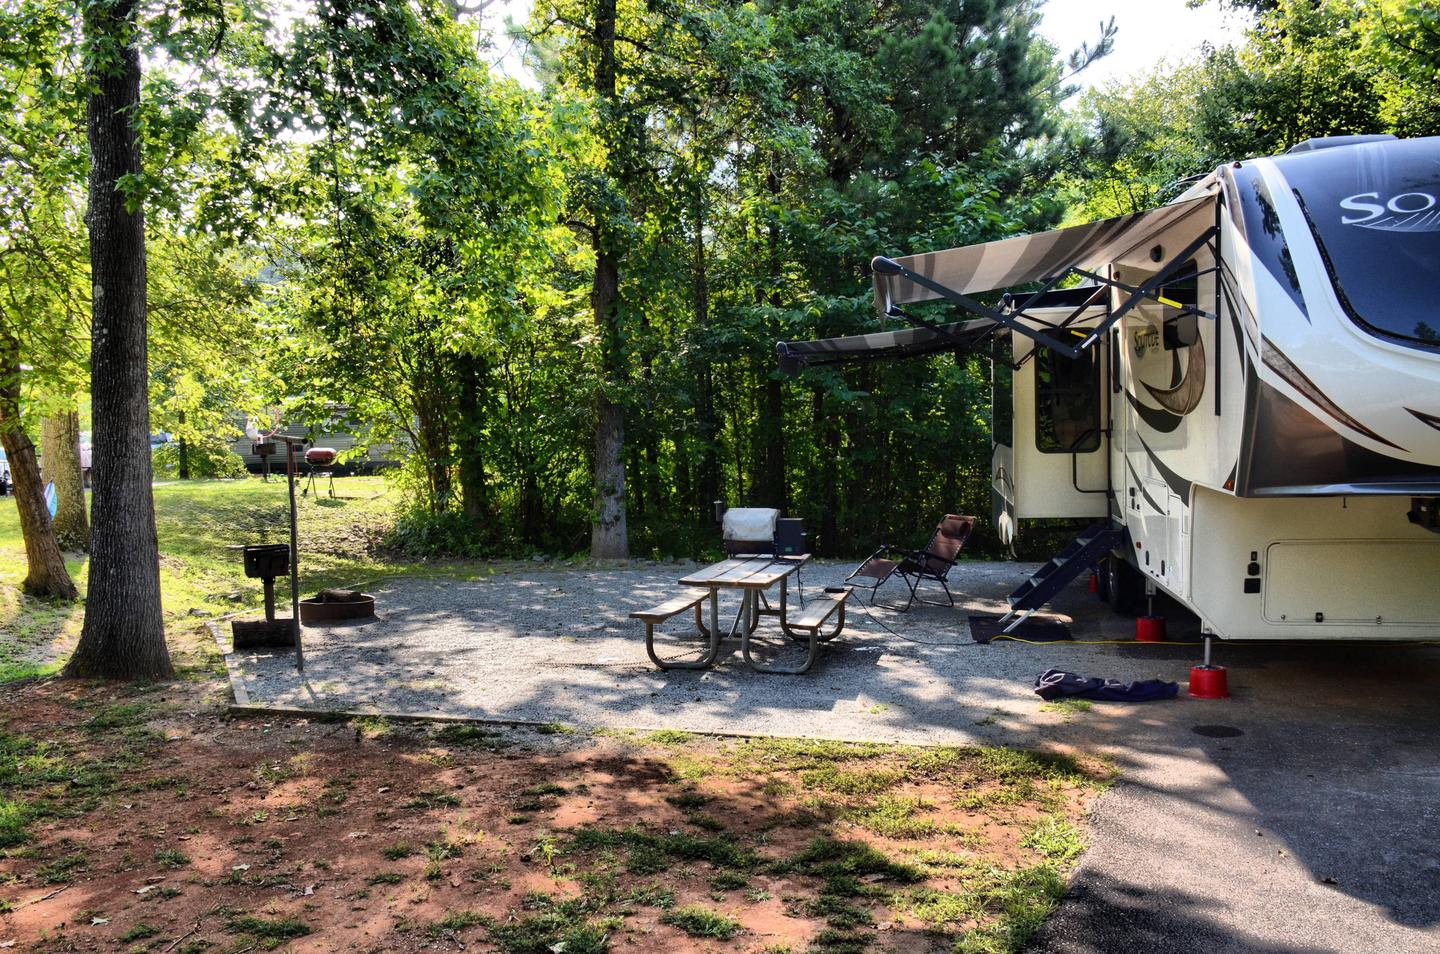 Campsite view, awning-side clearancePayne Campground, campsite 29.